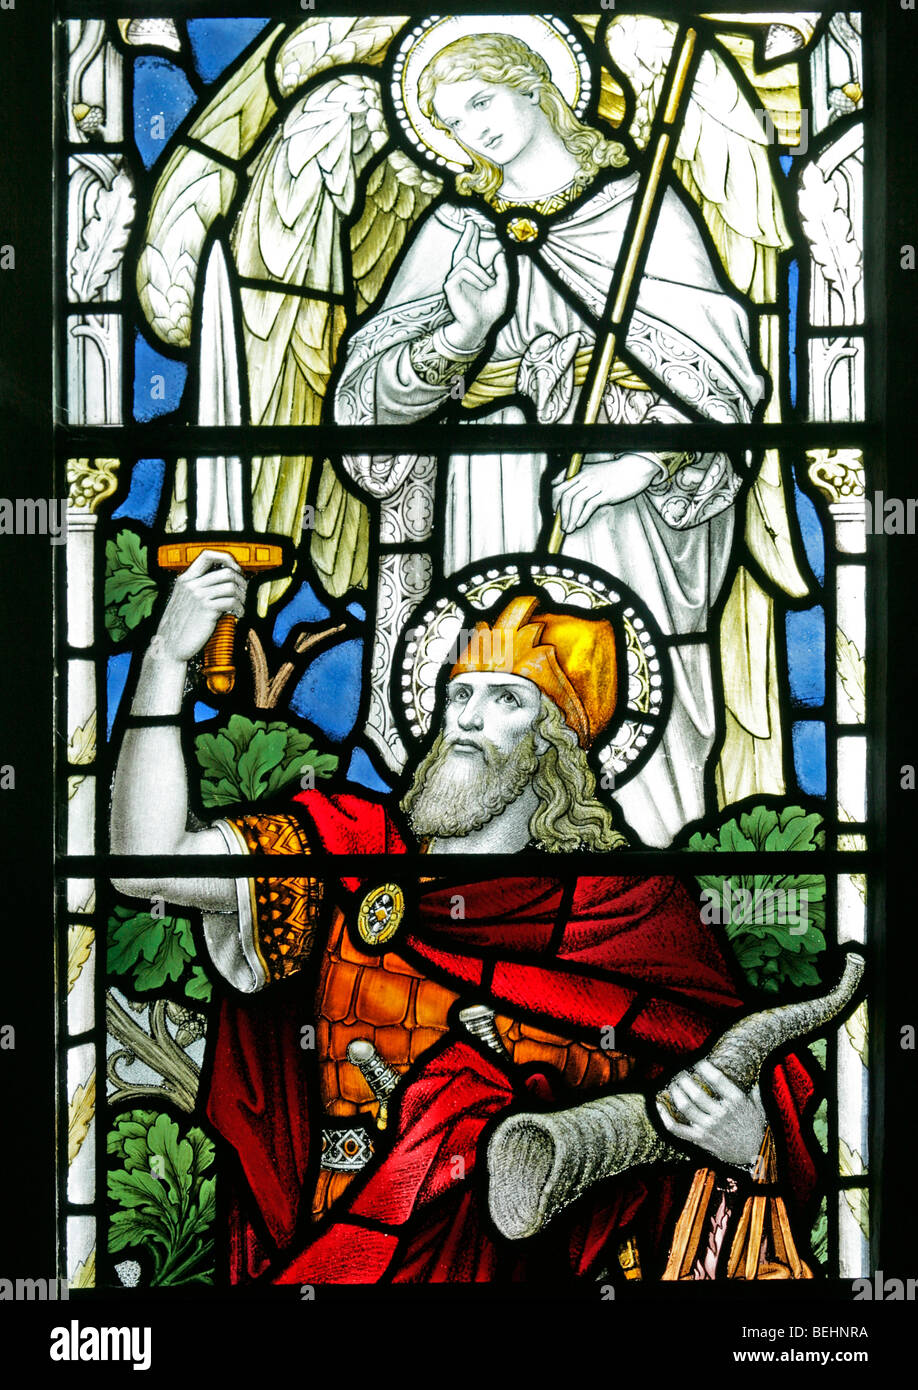 A stained glass window depicting Gideon holding a ram's horn, All Saints Church, Warham, Norfolk - Stock Image